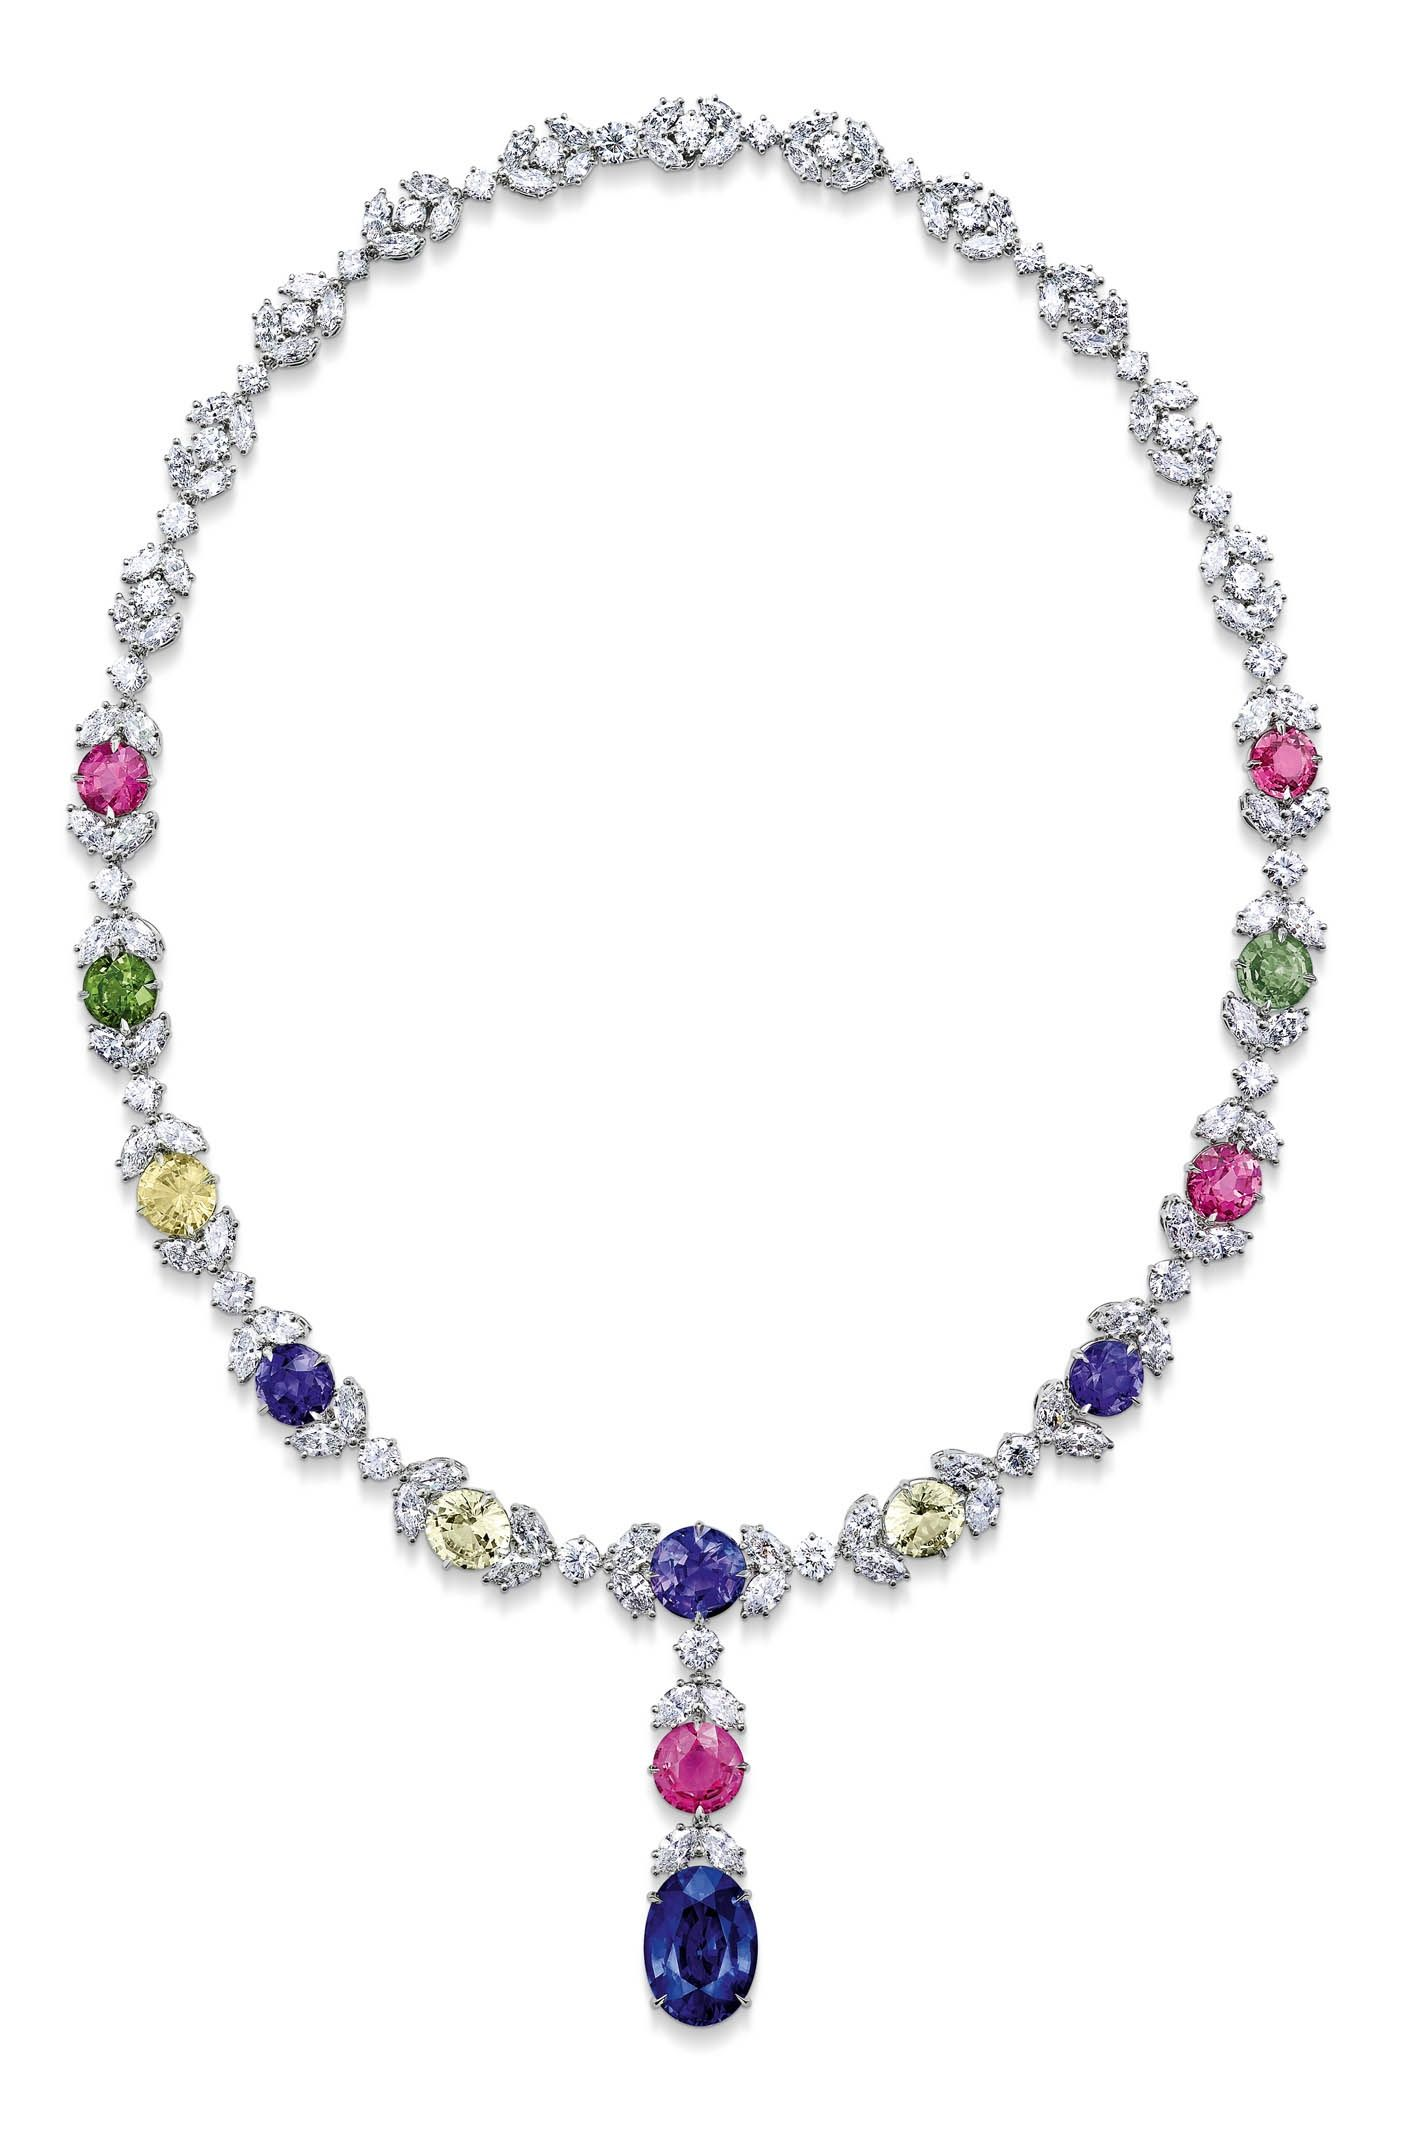 Asprey London exceptional colored sapphire and diamond necklace